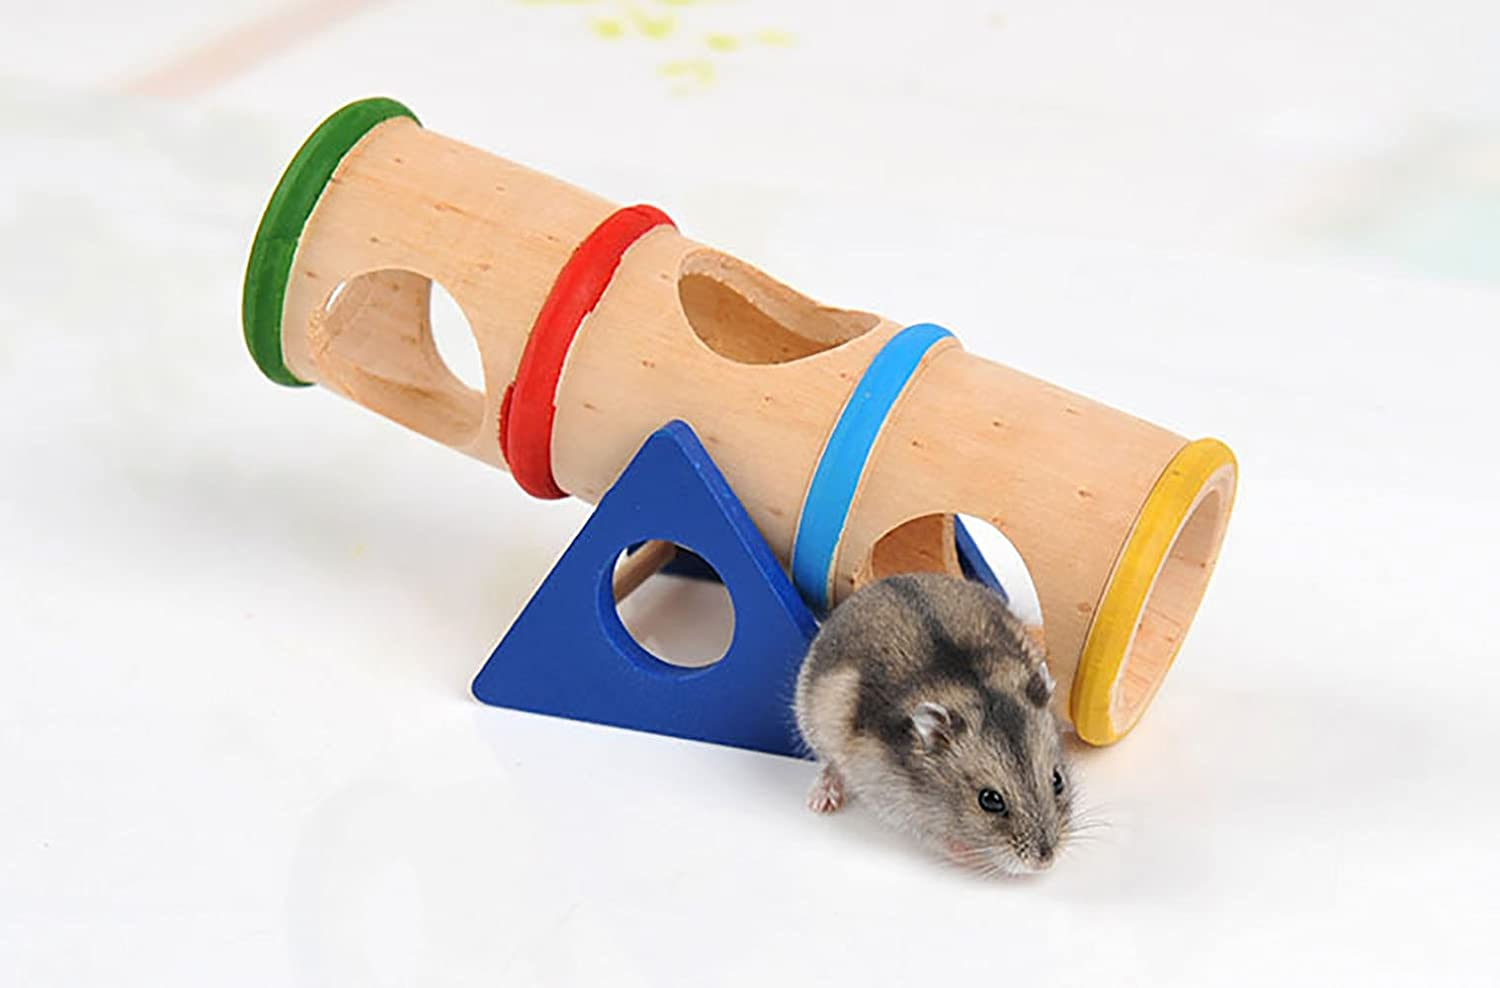 Hamster Wooden Toy Seesaw Tunnel colorful Cage House Hide Play Toy for Small Animals Like Dwarf Hamster and Mouse